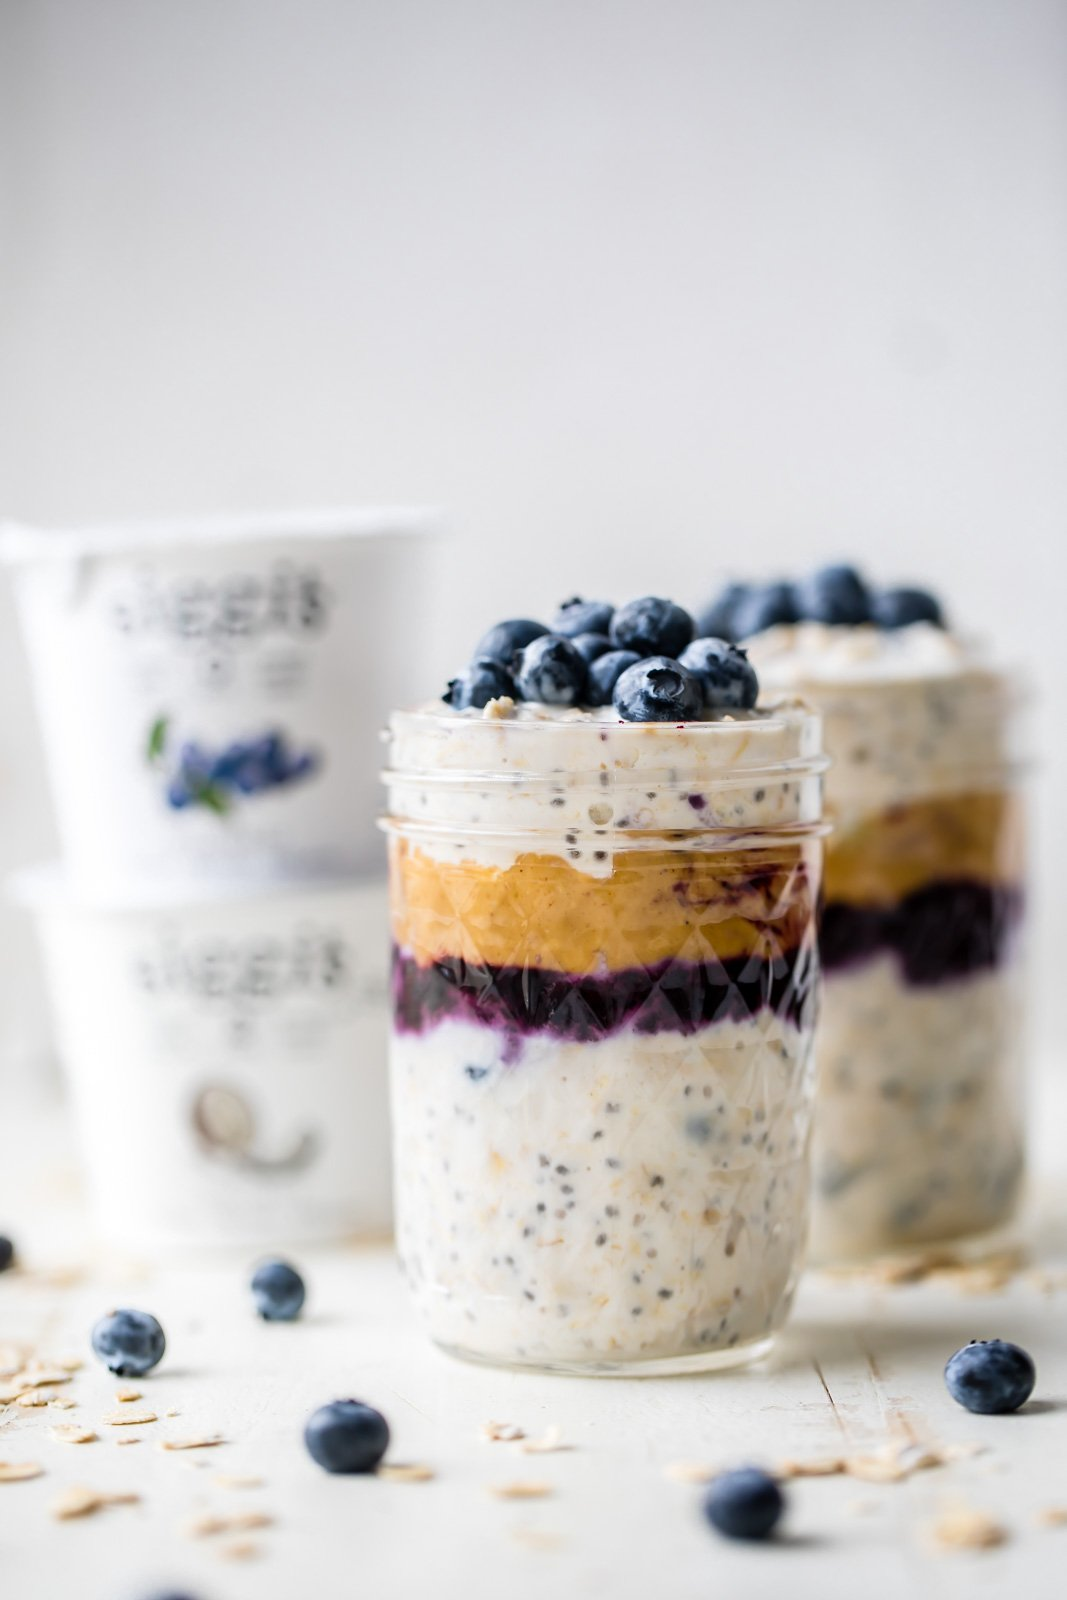 peanut butter blueberry overnight oats in a jar topped with blueberries